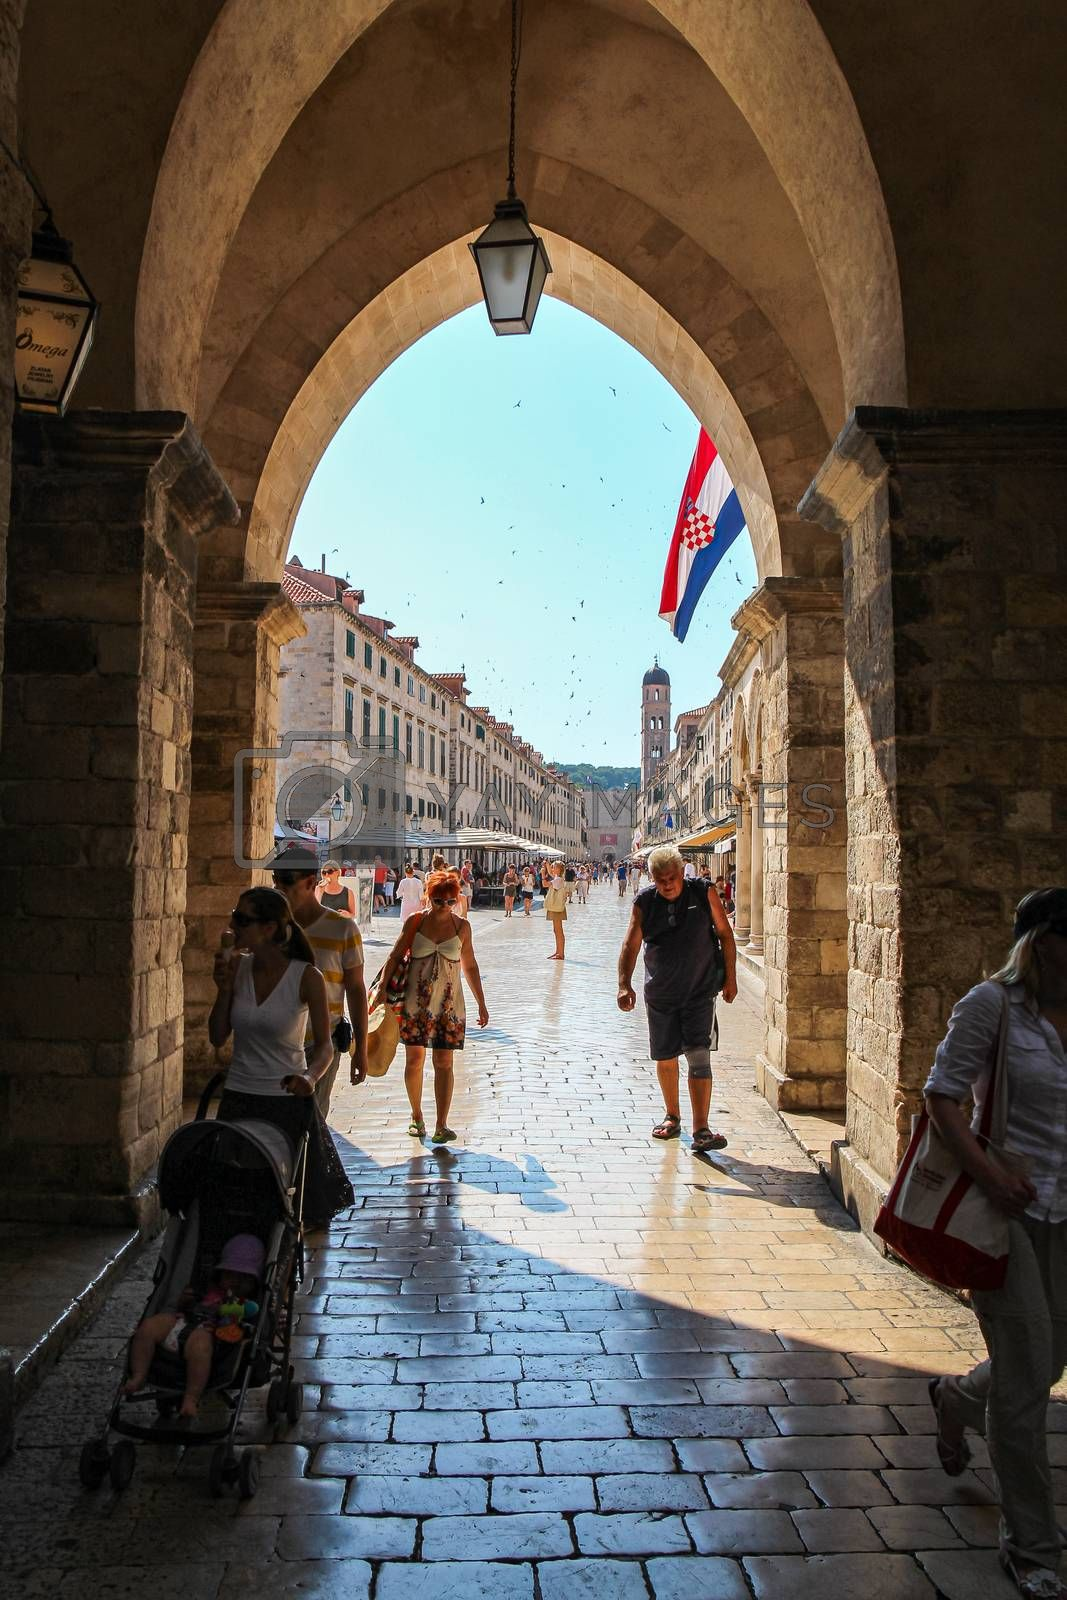 Dubrovnik, Croatia - July 15th 2018: A view down the Stradun main street in Dubrovnik's old town, from an archway, with a Croatian flag flying